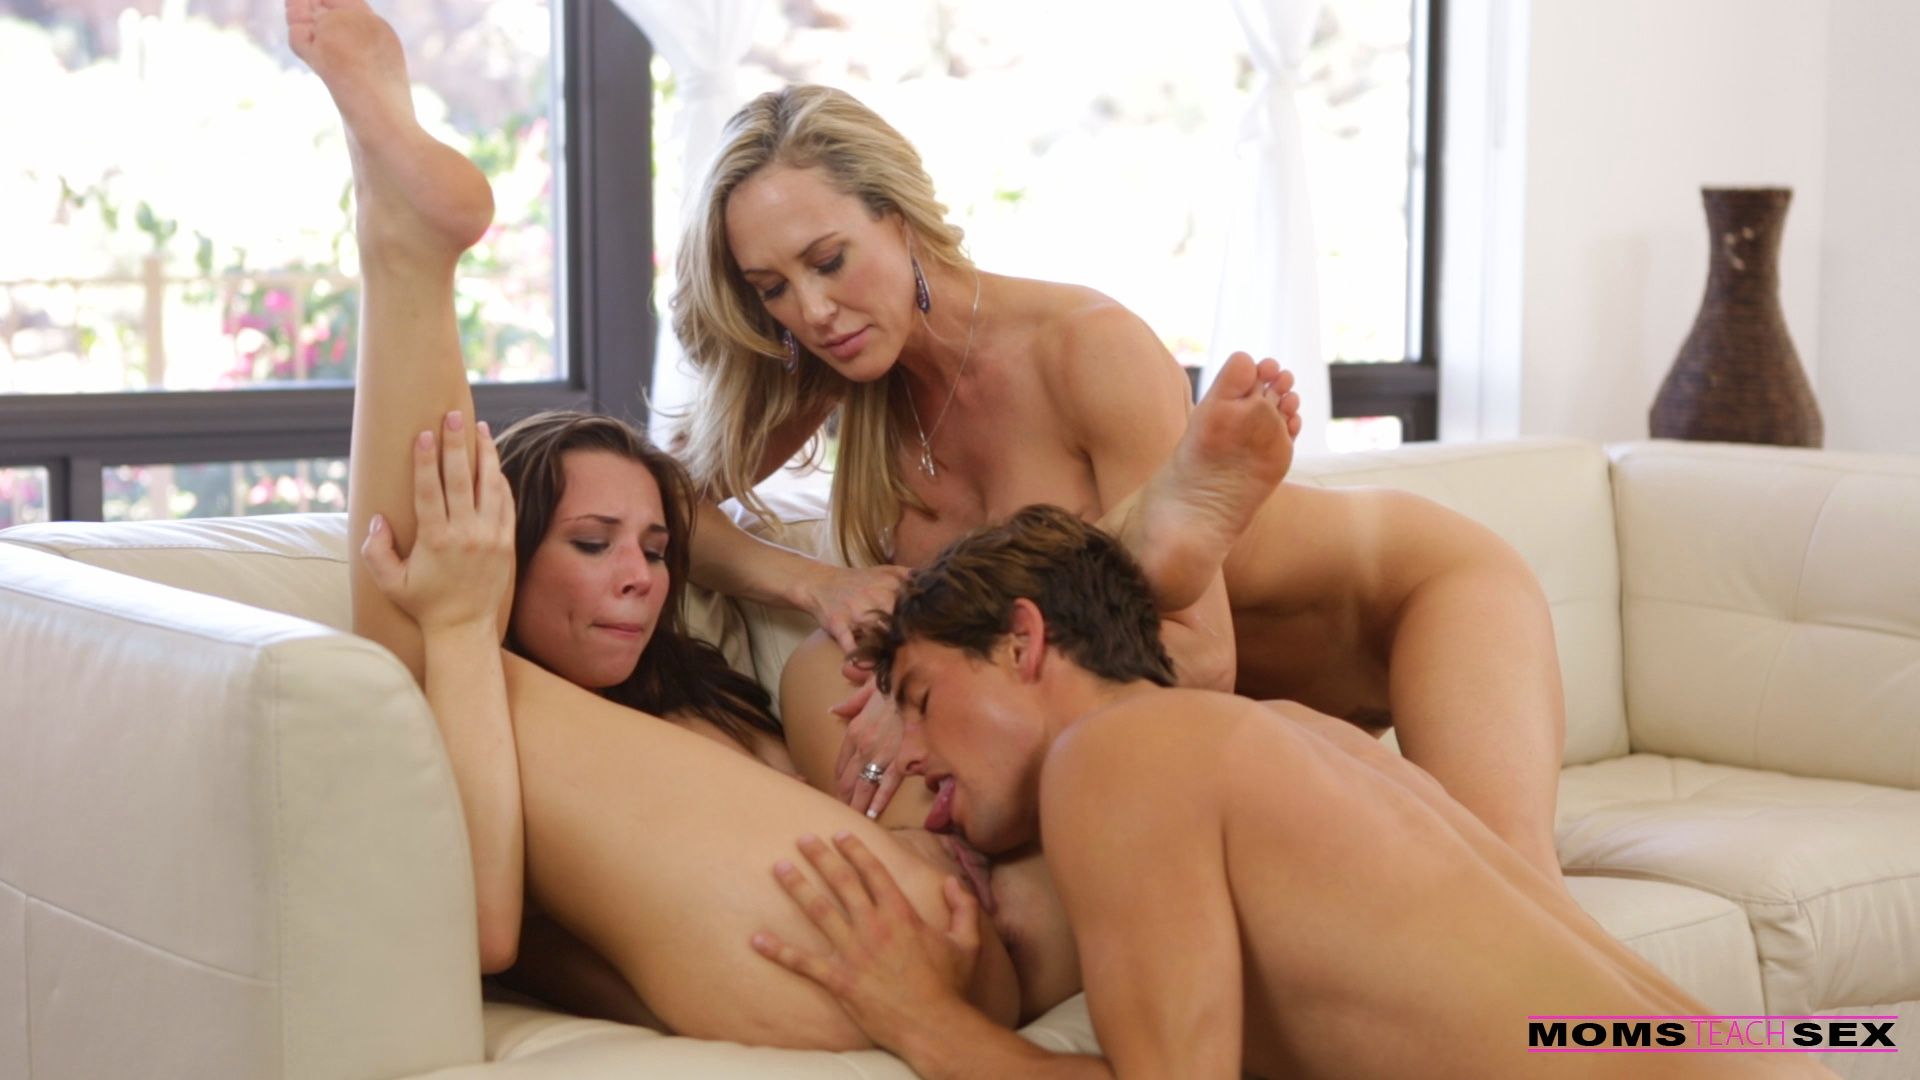 Mom Teach Sex Alexis Fawx